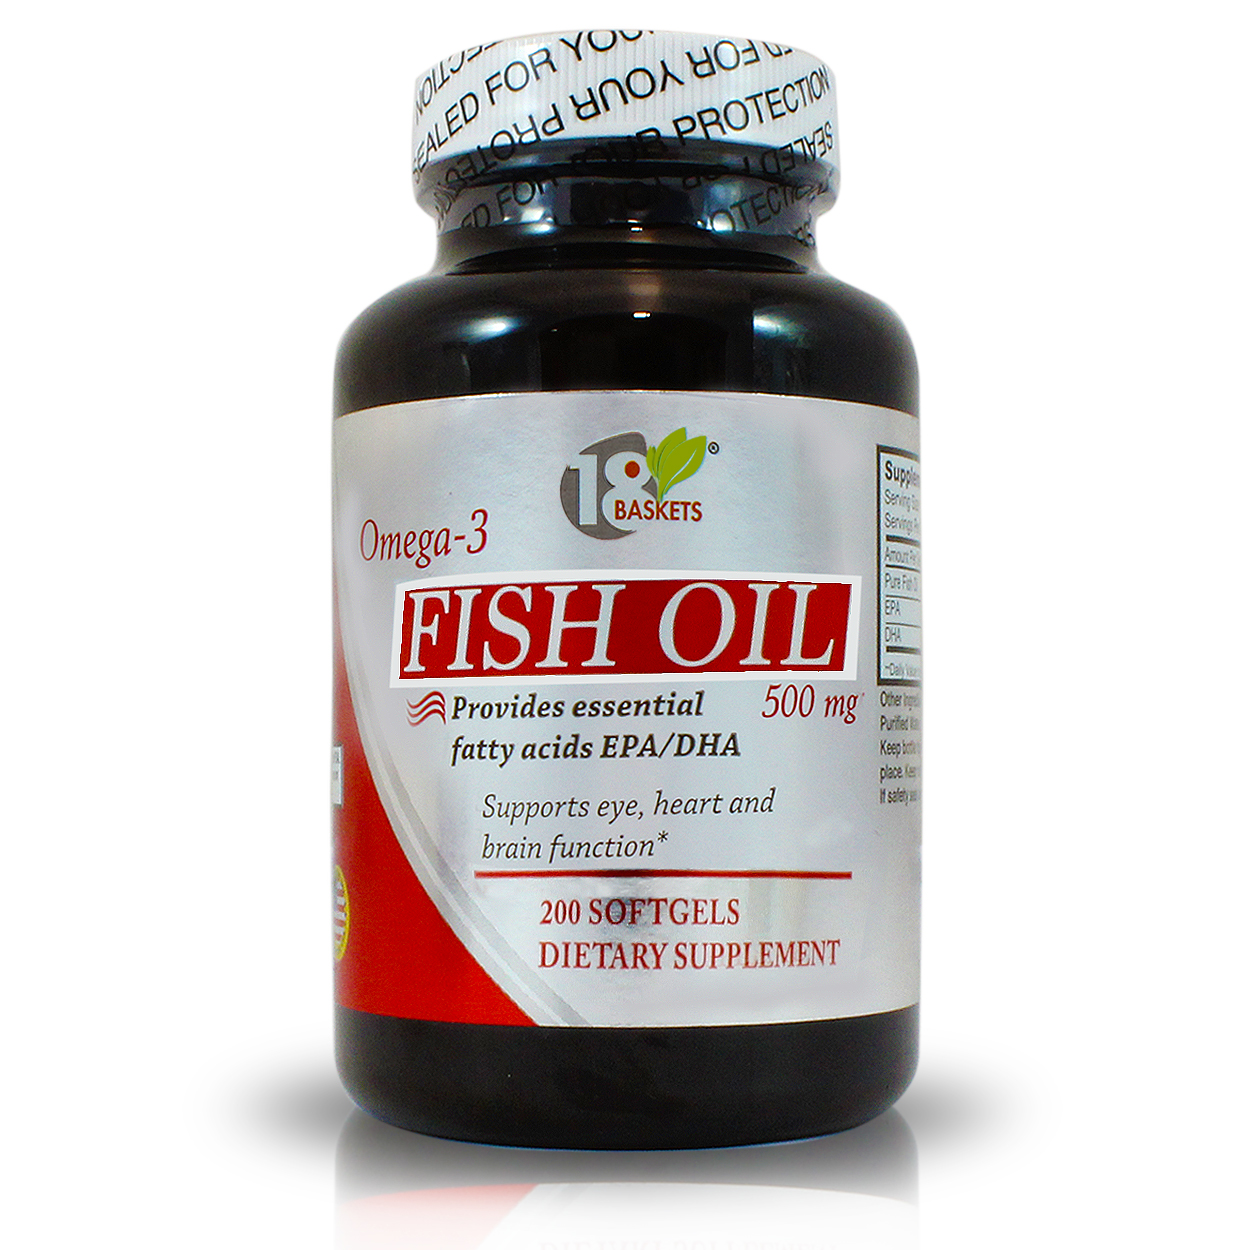 18 basket omega 3 fish oil gmp global marketing inc for Does fish oil lower triglycerides